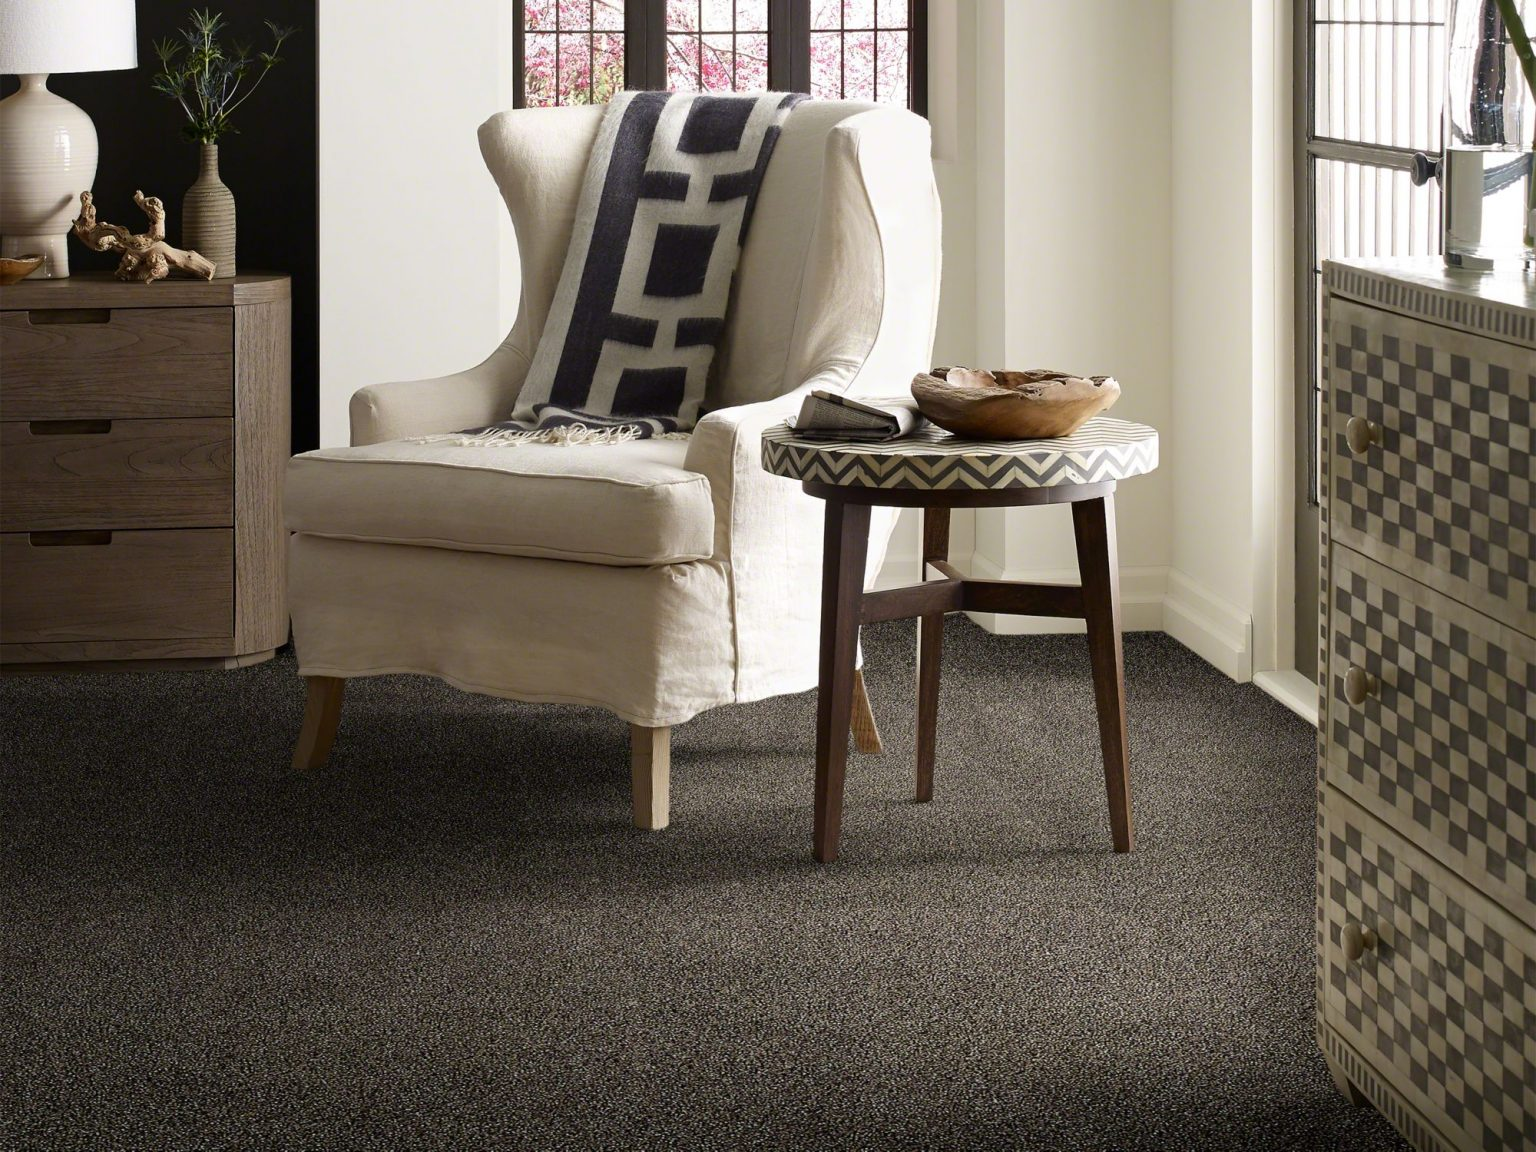 Carpet Flooring Gallery in your city | | JR Floors and Window Coverings Maple Ridge, BC